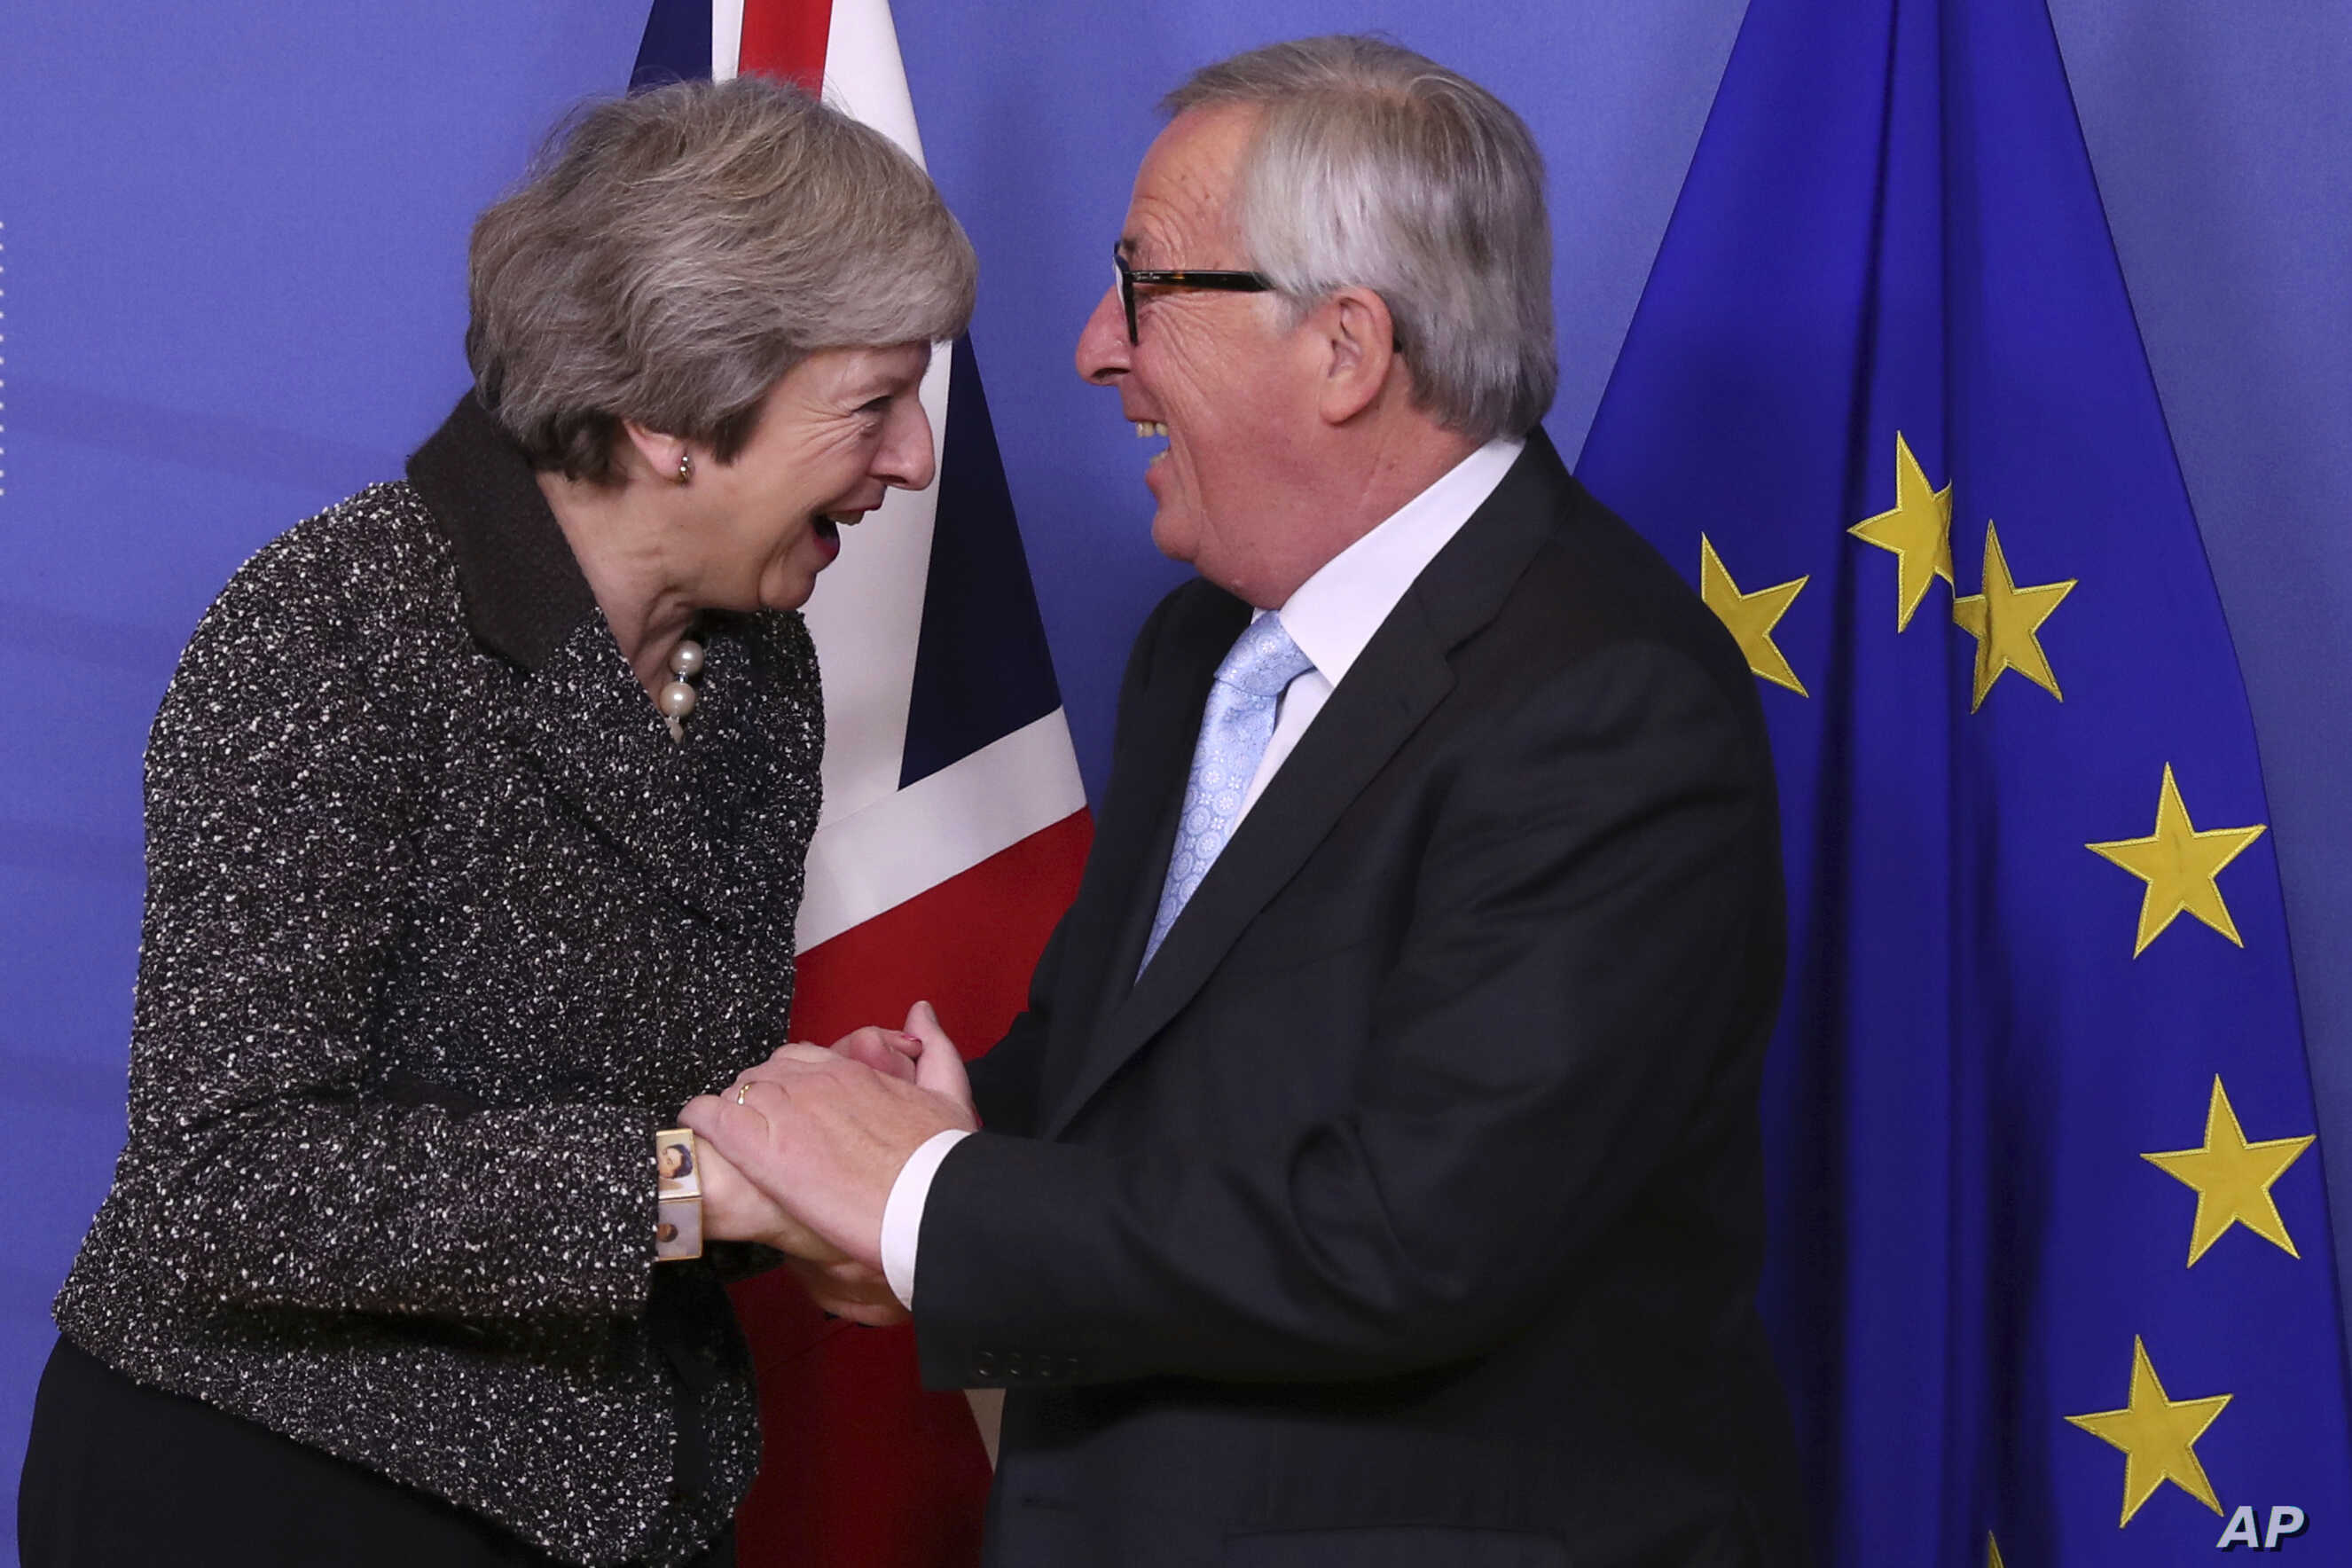 British Prime Minister Theresa May, left, is greeted by European Commission President Jean-Claude Juncker at EU headquarters in Brussels, Dec. 11 2018.